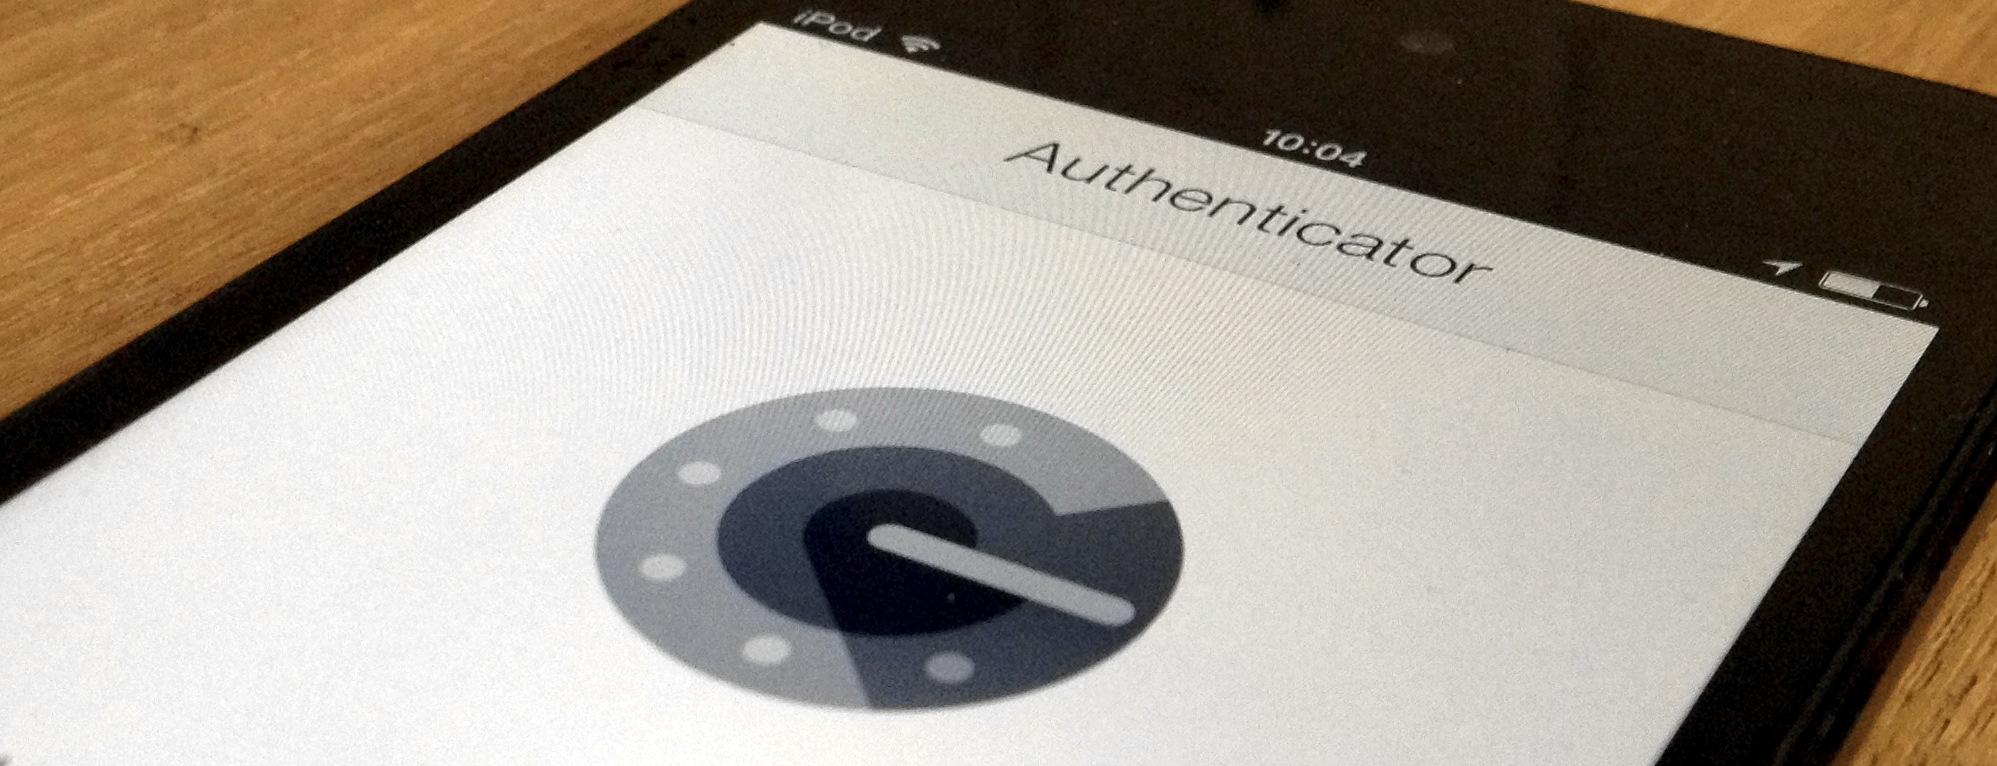 Google Authenticator for iOS Returns to the App Store